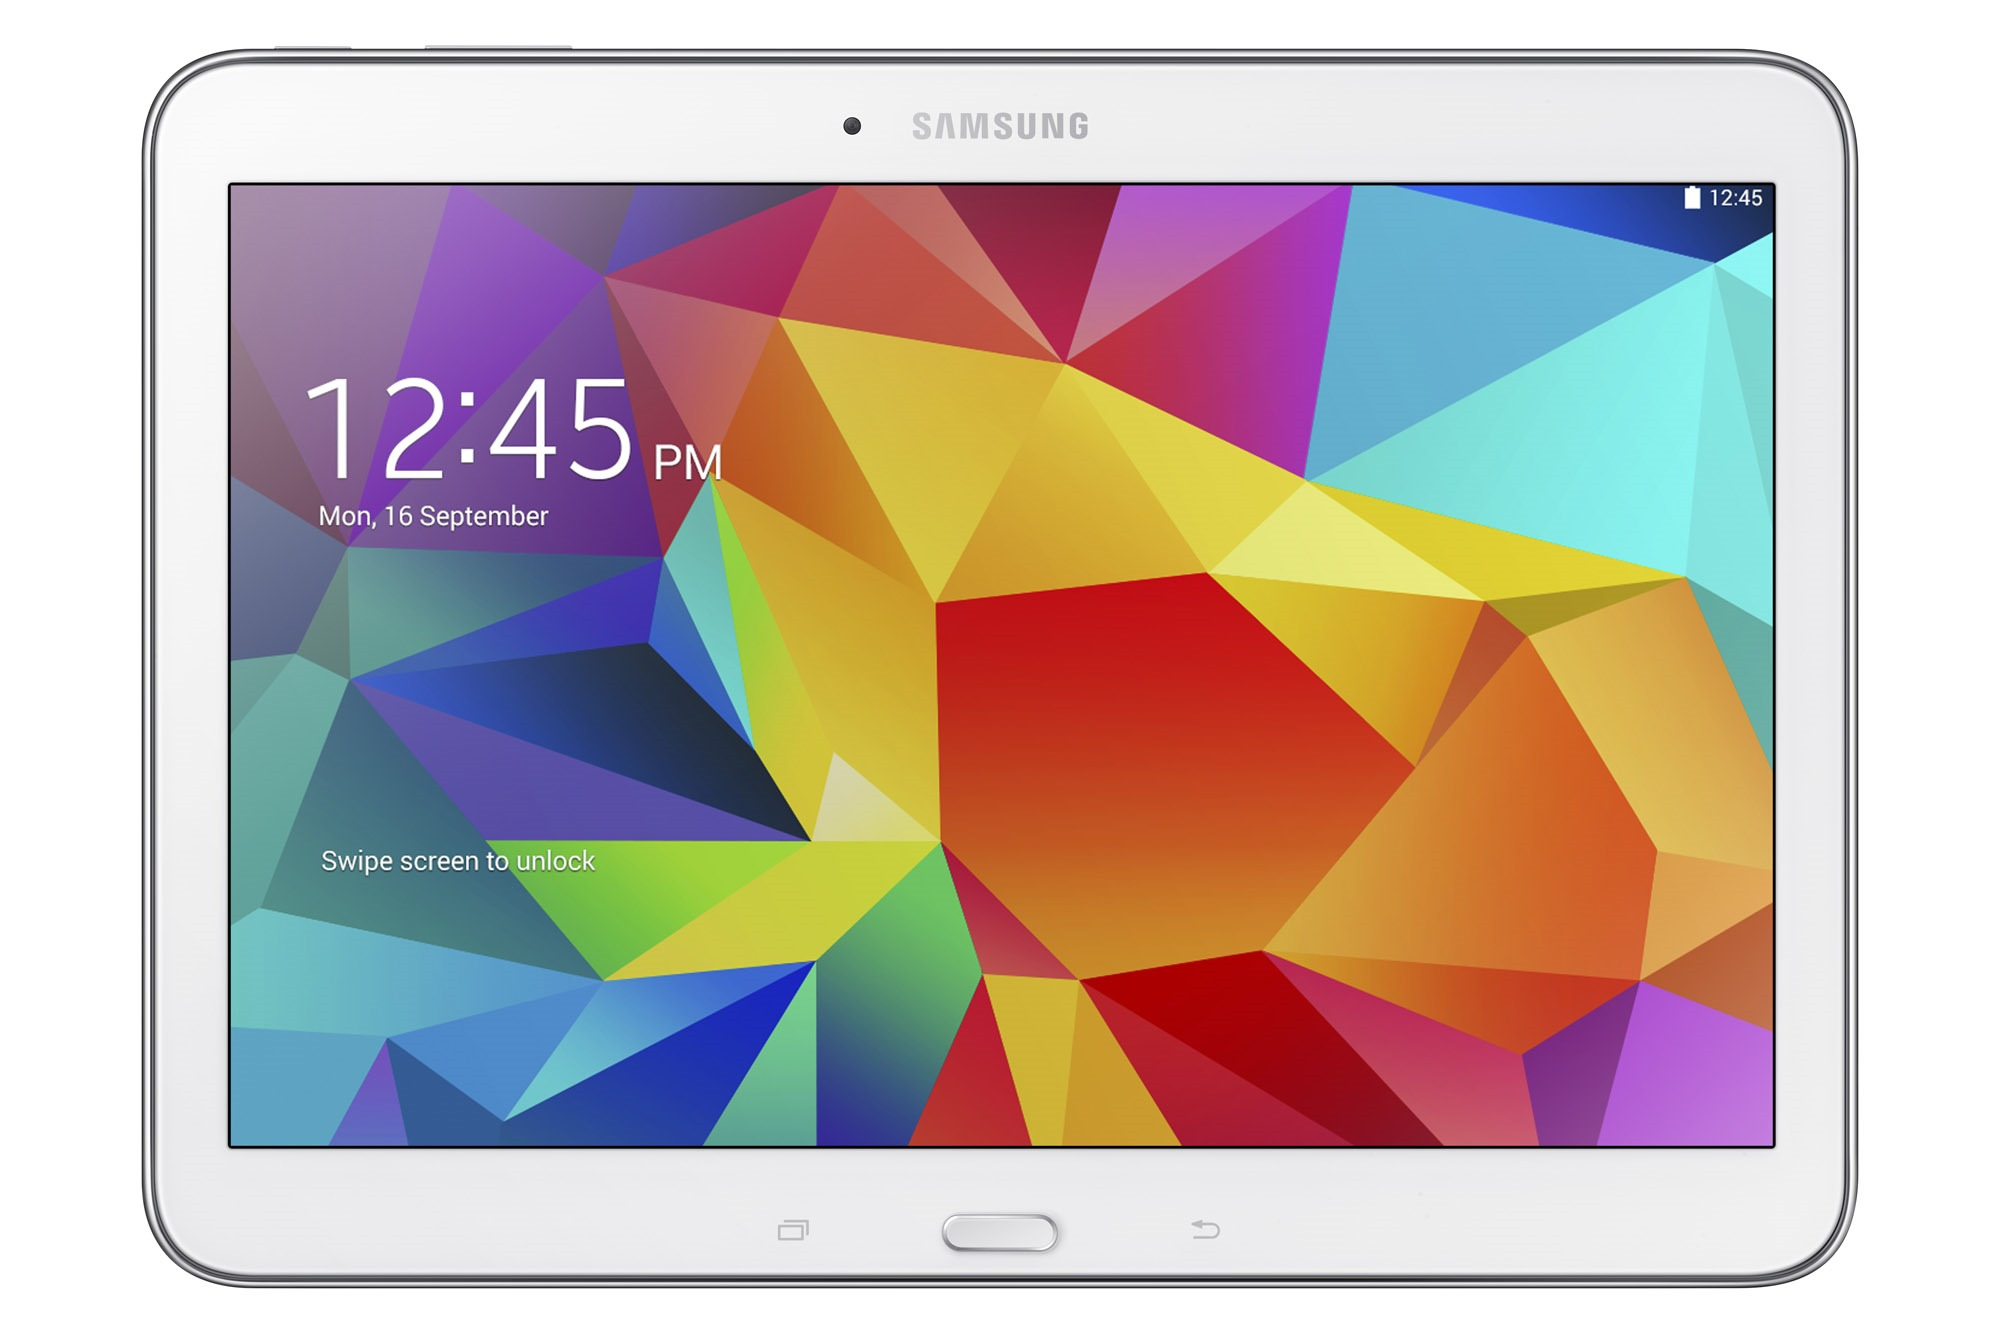 Samsung Announces The Galaxy Tab 4 Line In 7, 8, and 10.1-inch Varieties, All Packing KitKat And Mediocre Specs